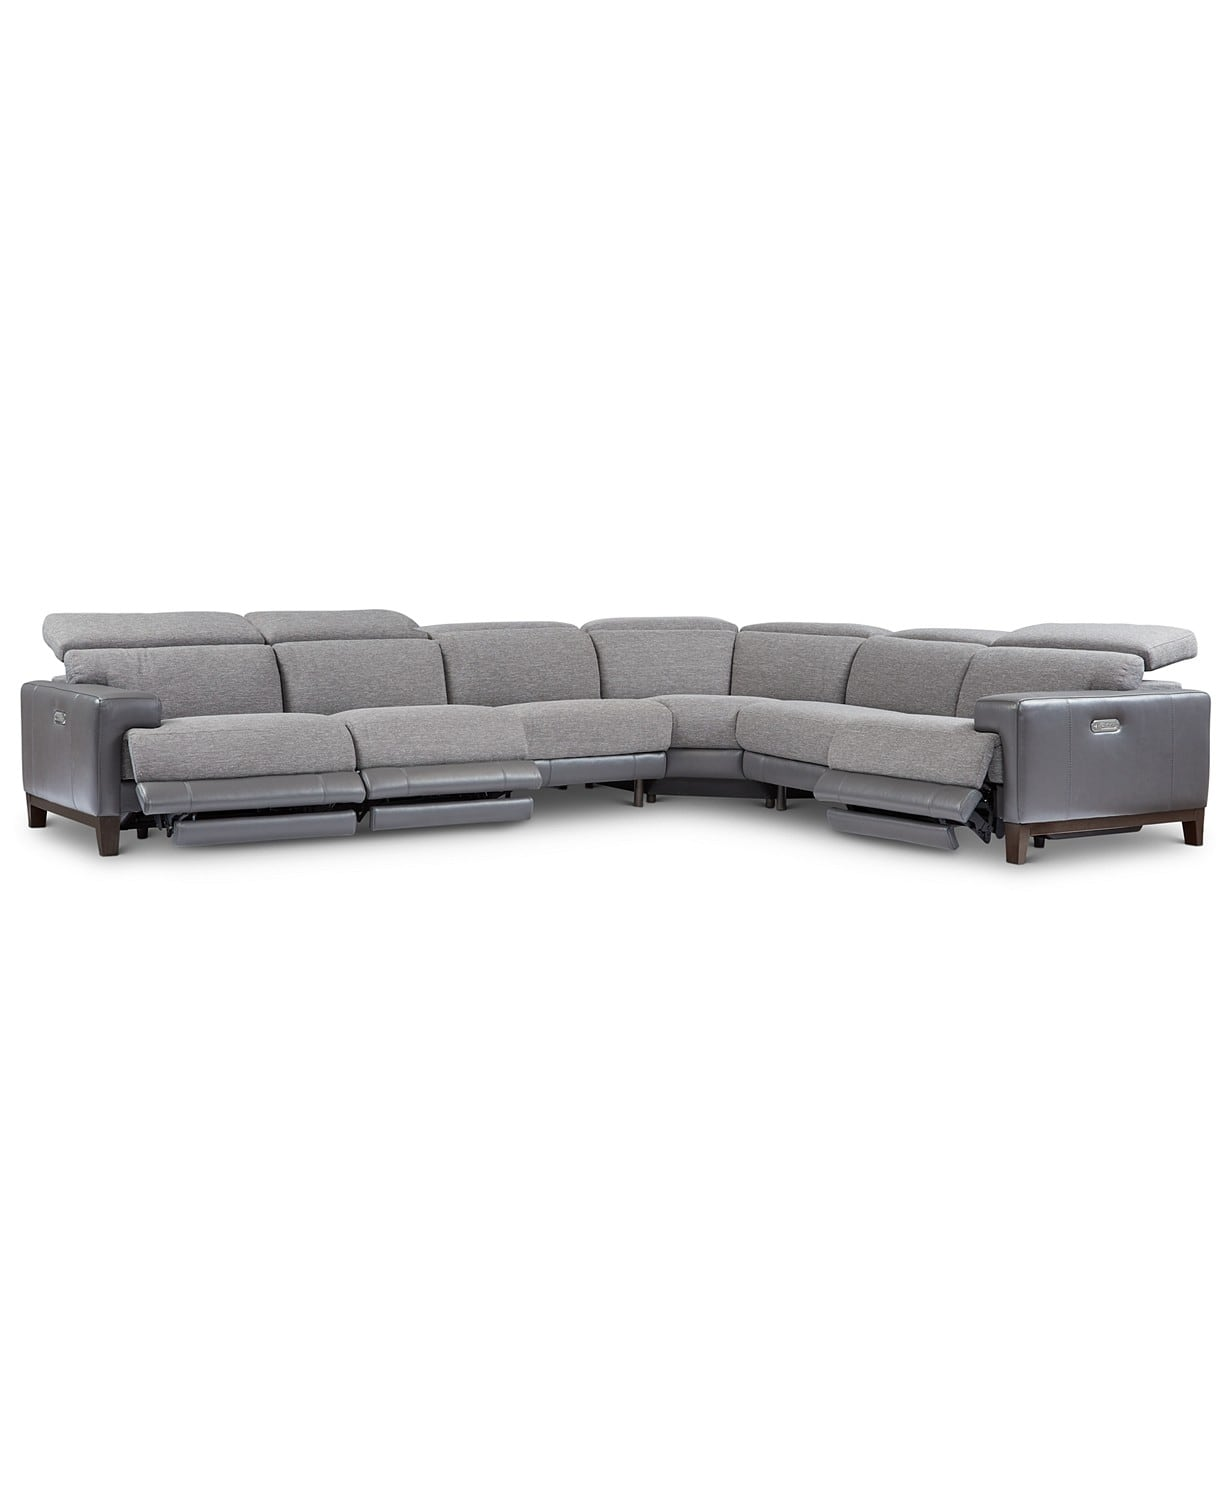 Phenomenal 6 Chair Recliner Sofa At Macys For 111 200 Shipping 311 Pabps2019 Chair Design Images Pabps2019Com